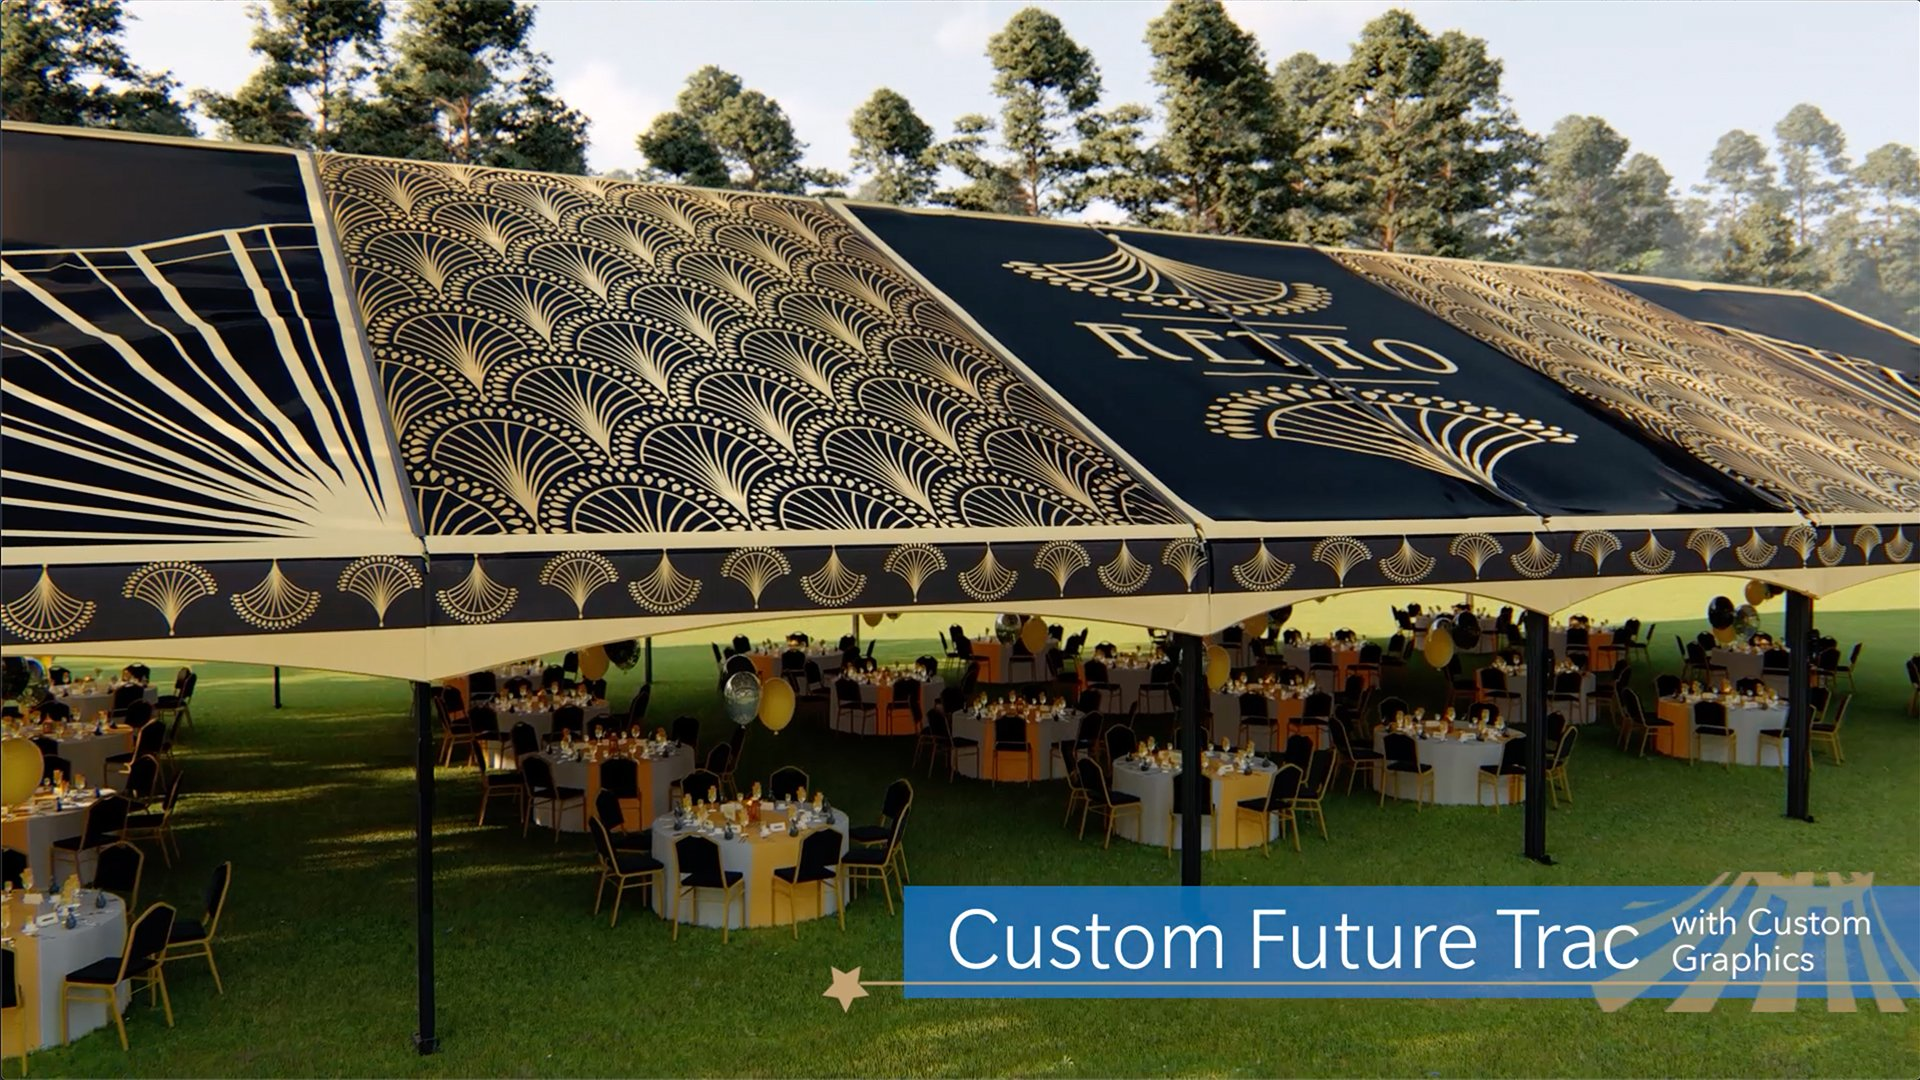 Custom Future Trac Event Tent